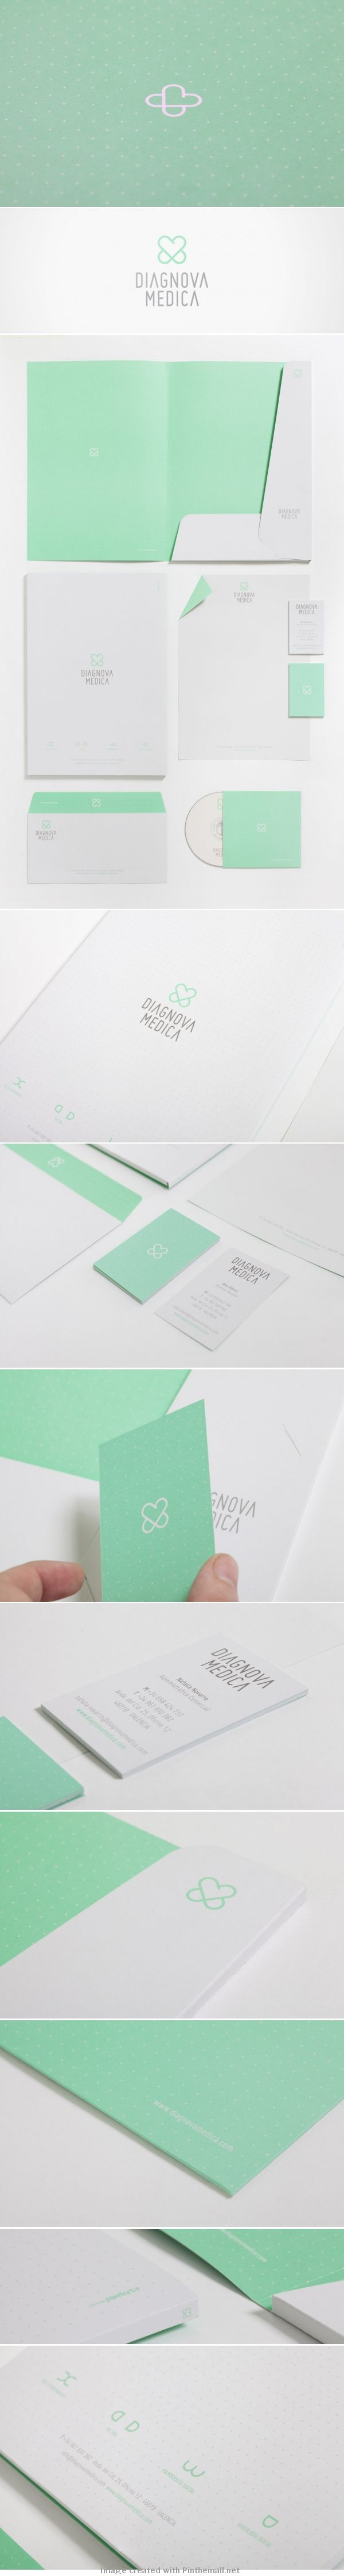 corporate business branding visual identity design card letter head brochure